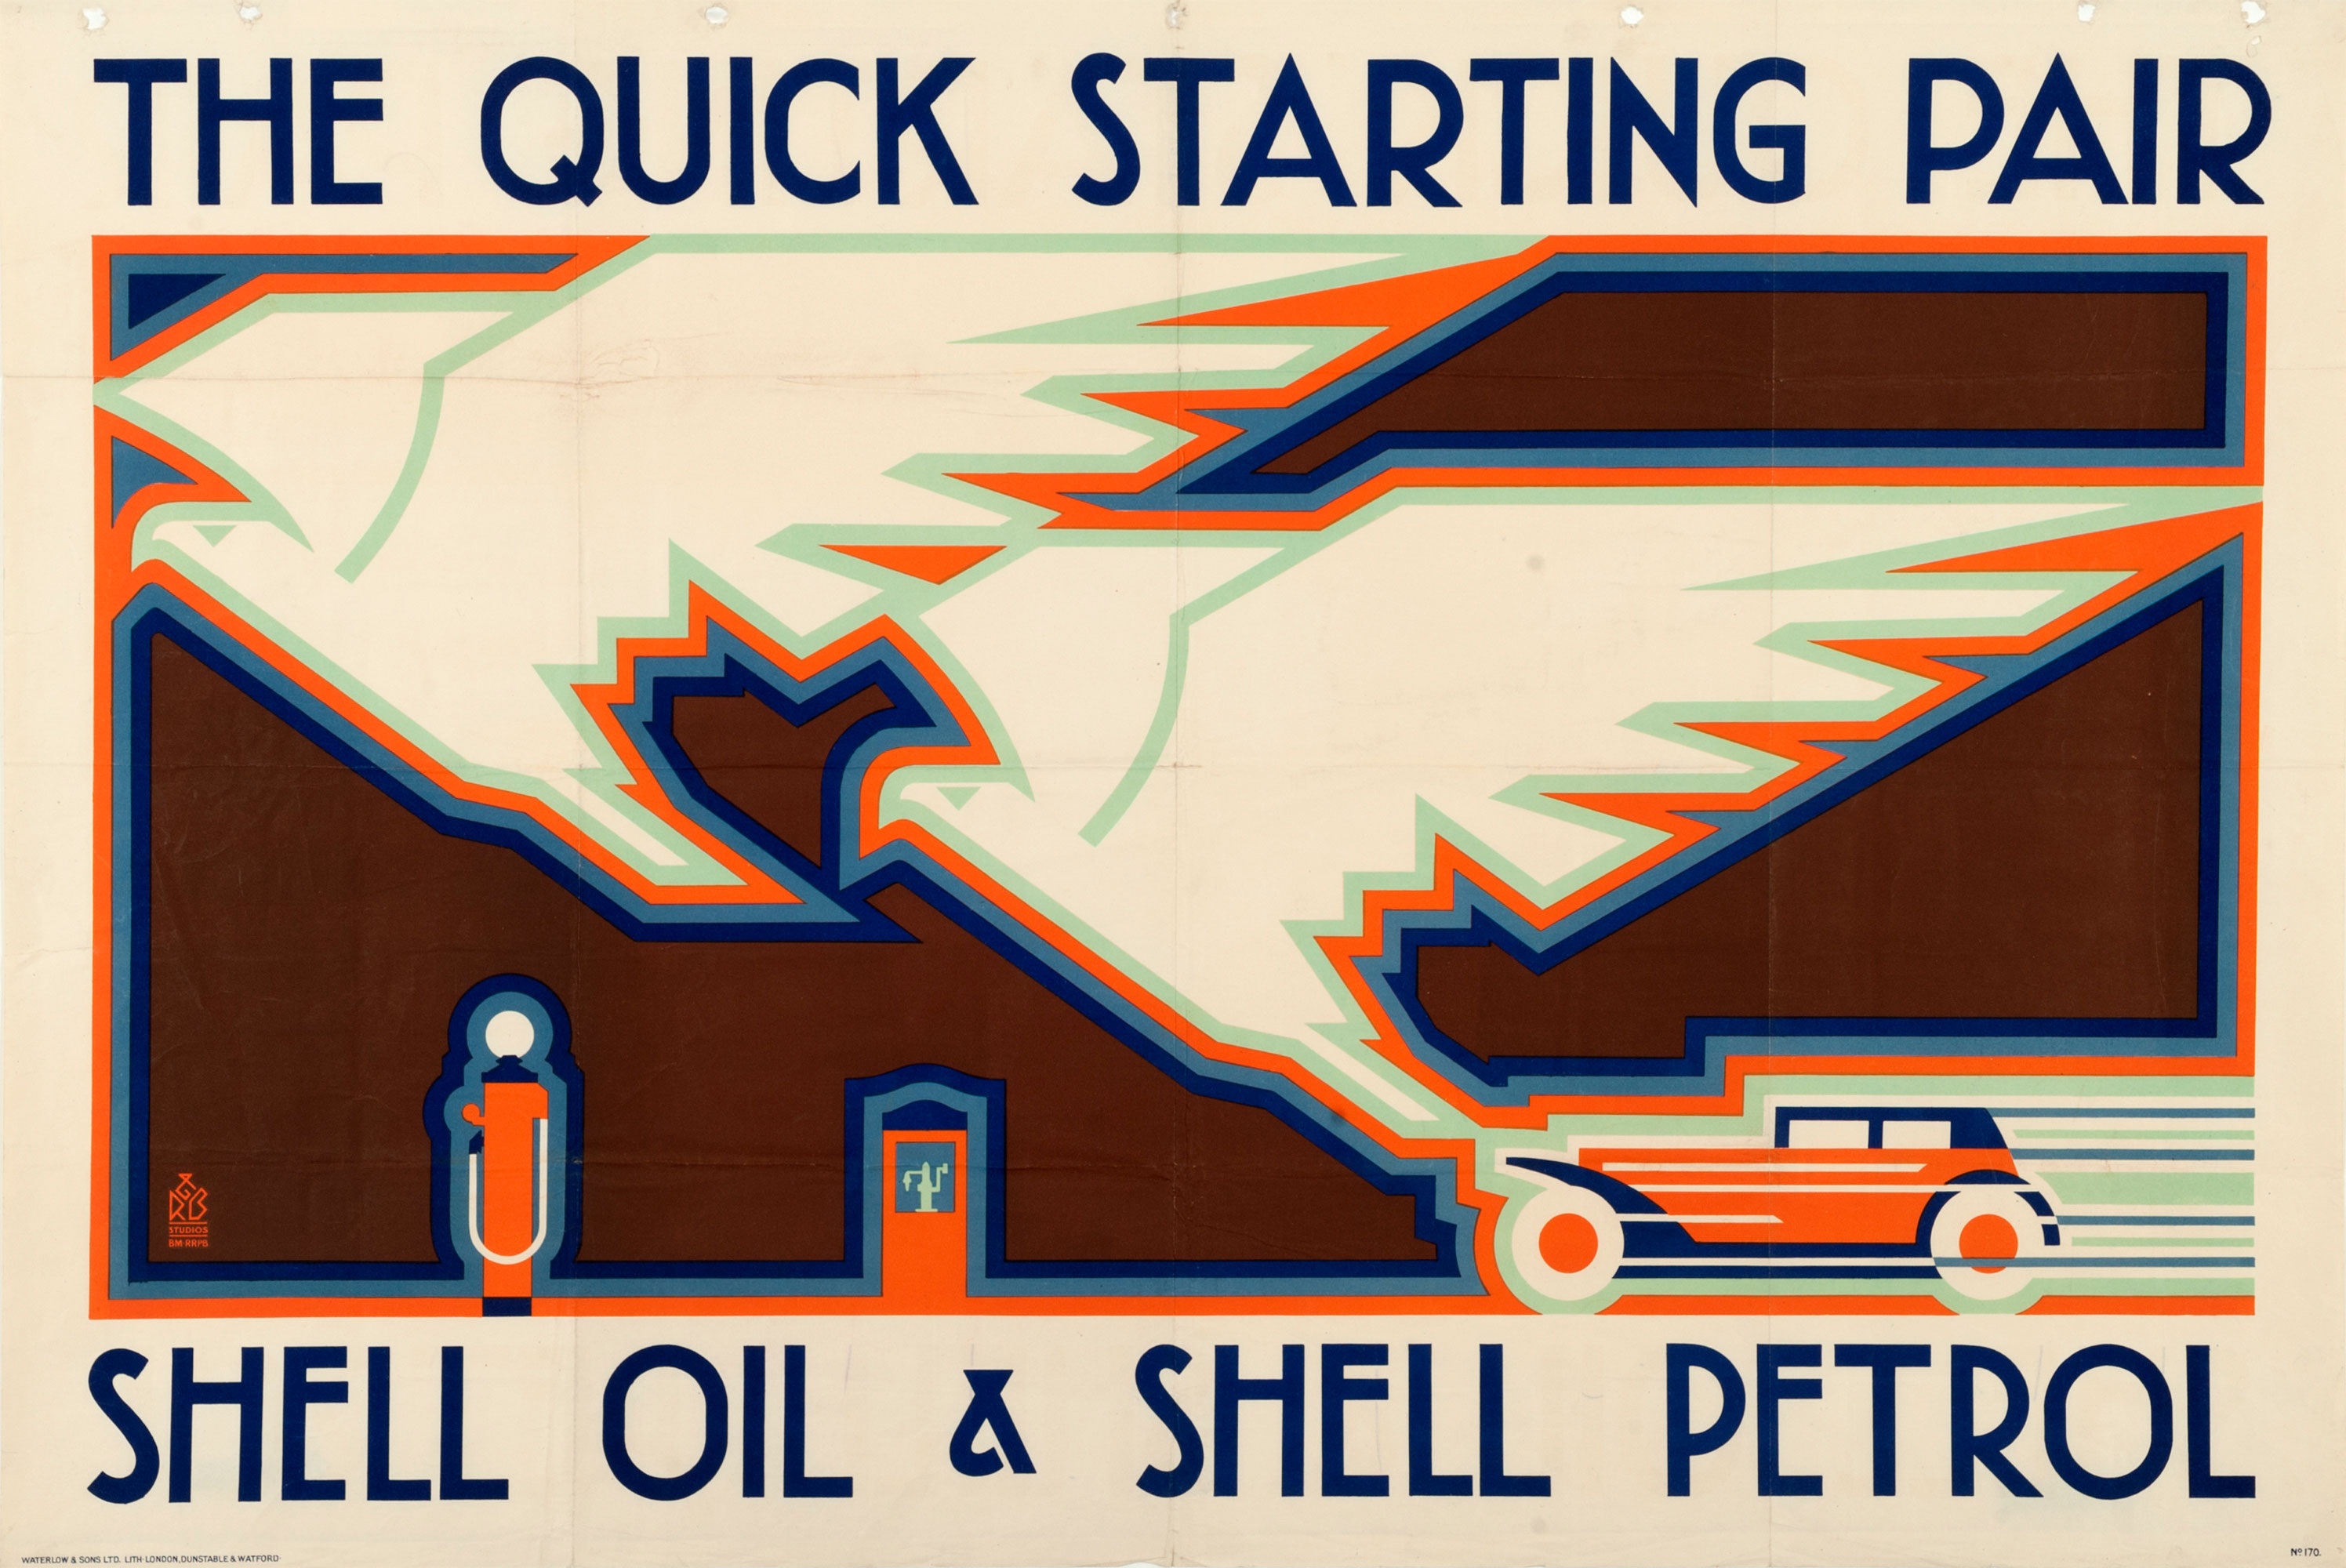 Shell poster number 170, Eagles and Car by R.B. Studios (1928). Picture shows a speeding vintage car incorporating the graphic design of two eagles produced in an art deco style.